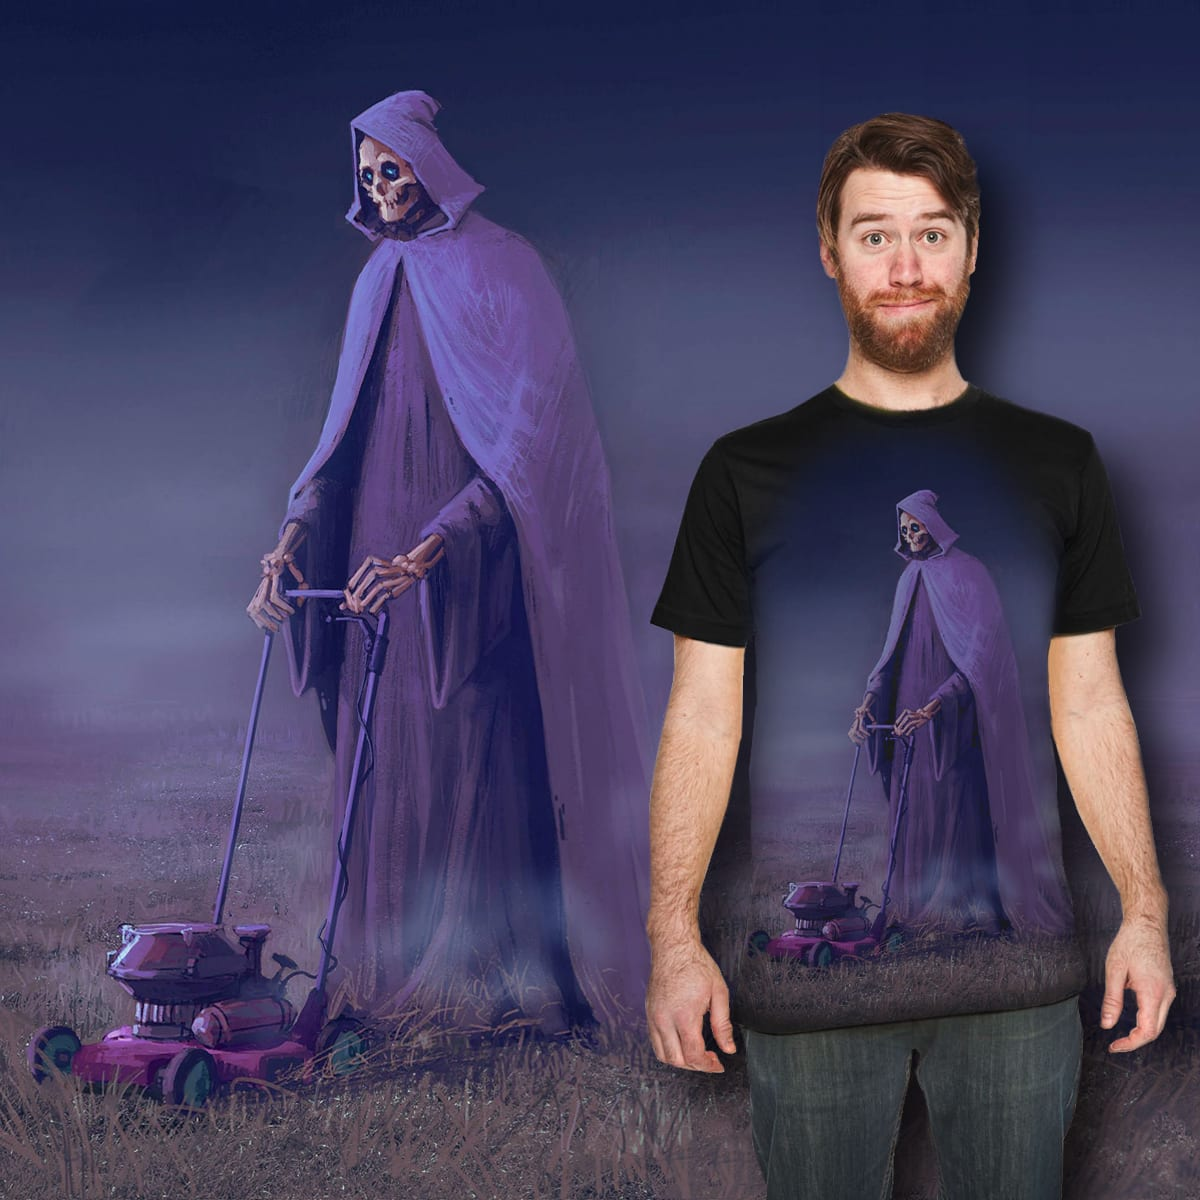 The Grim Reaper  by Bedyk on Threadless